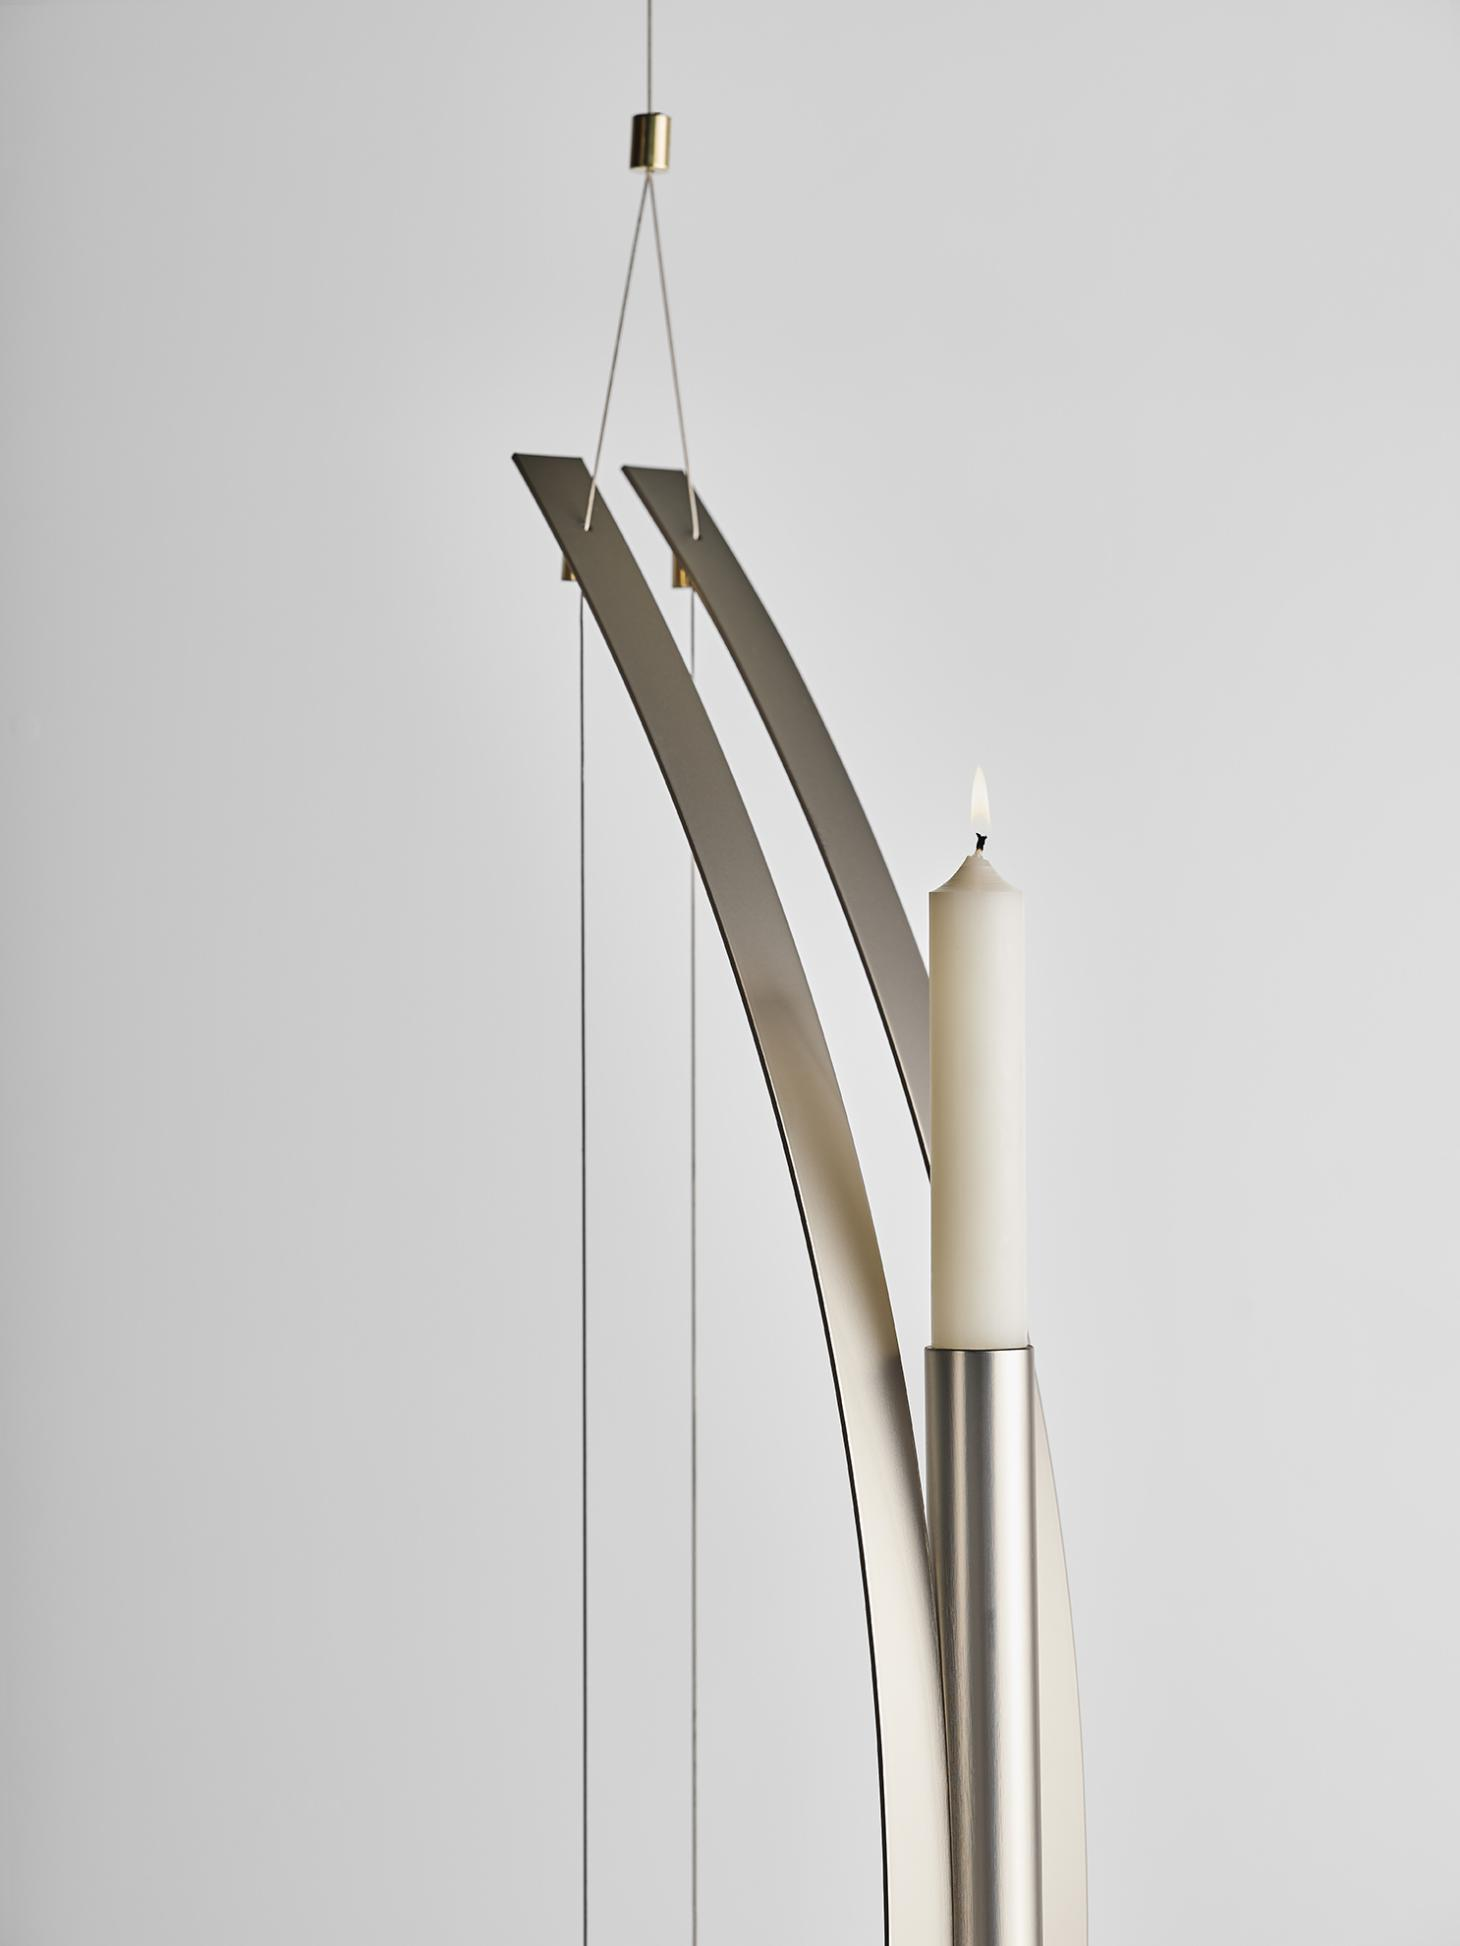 Hanging candleholder in brass by Federica Biasi with white candle